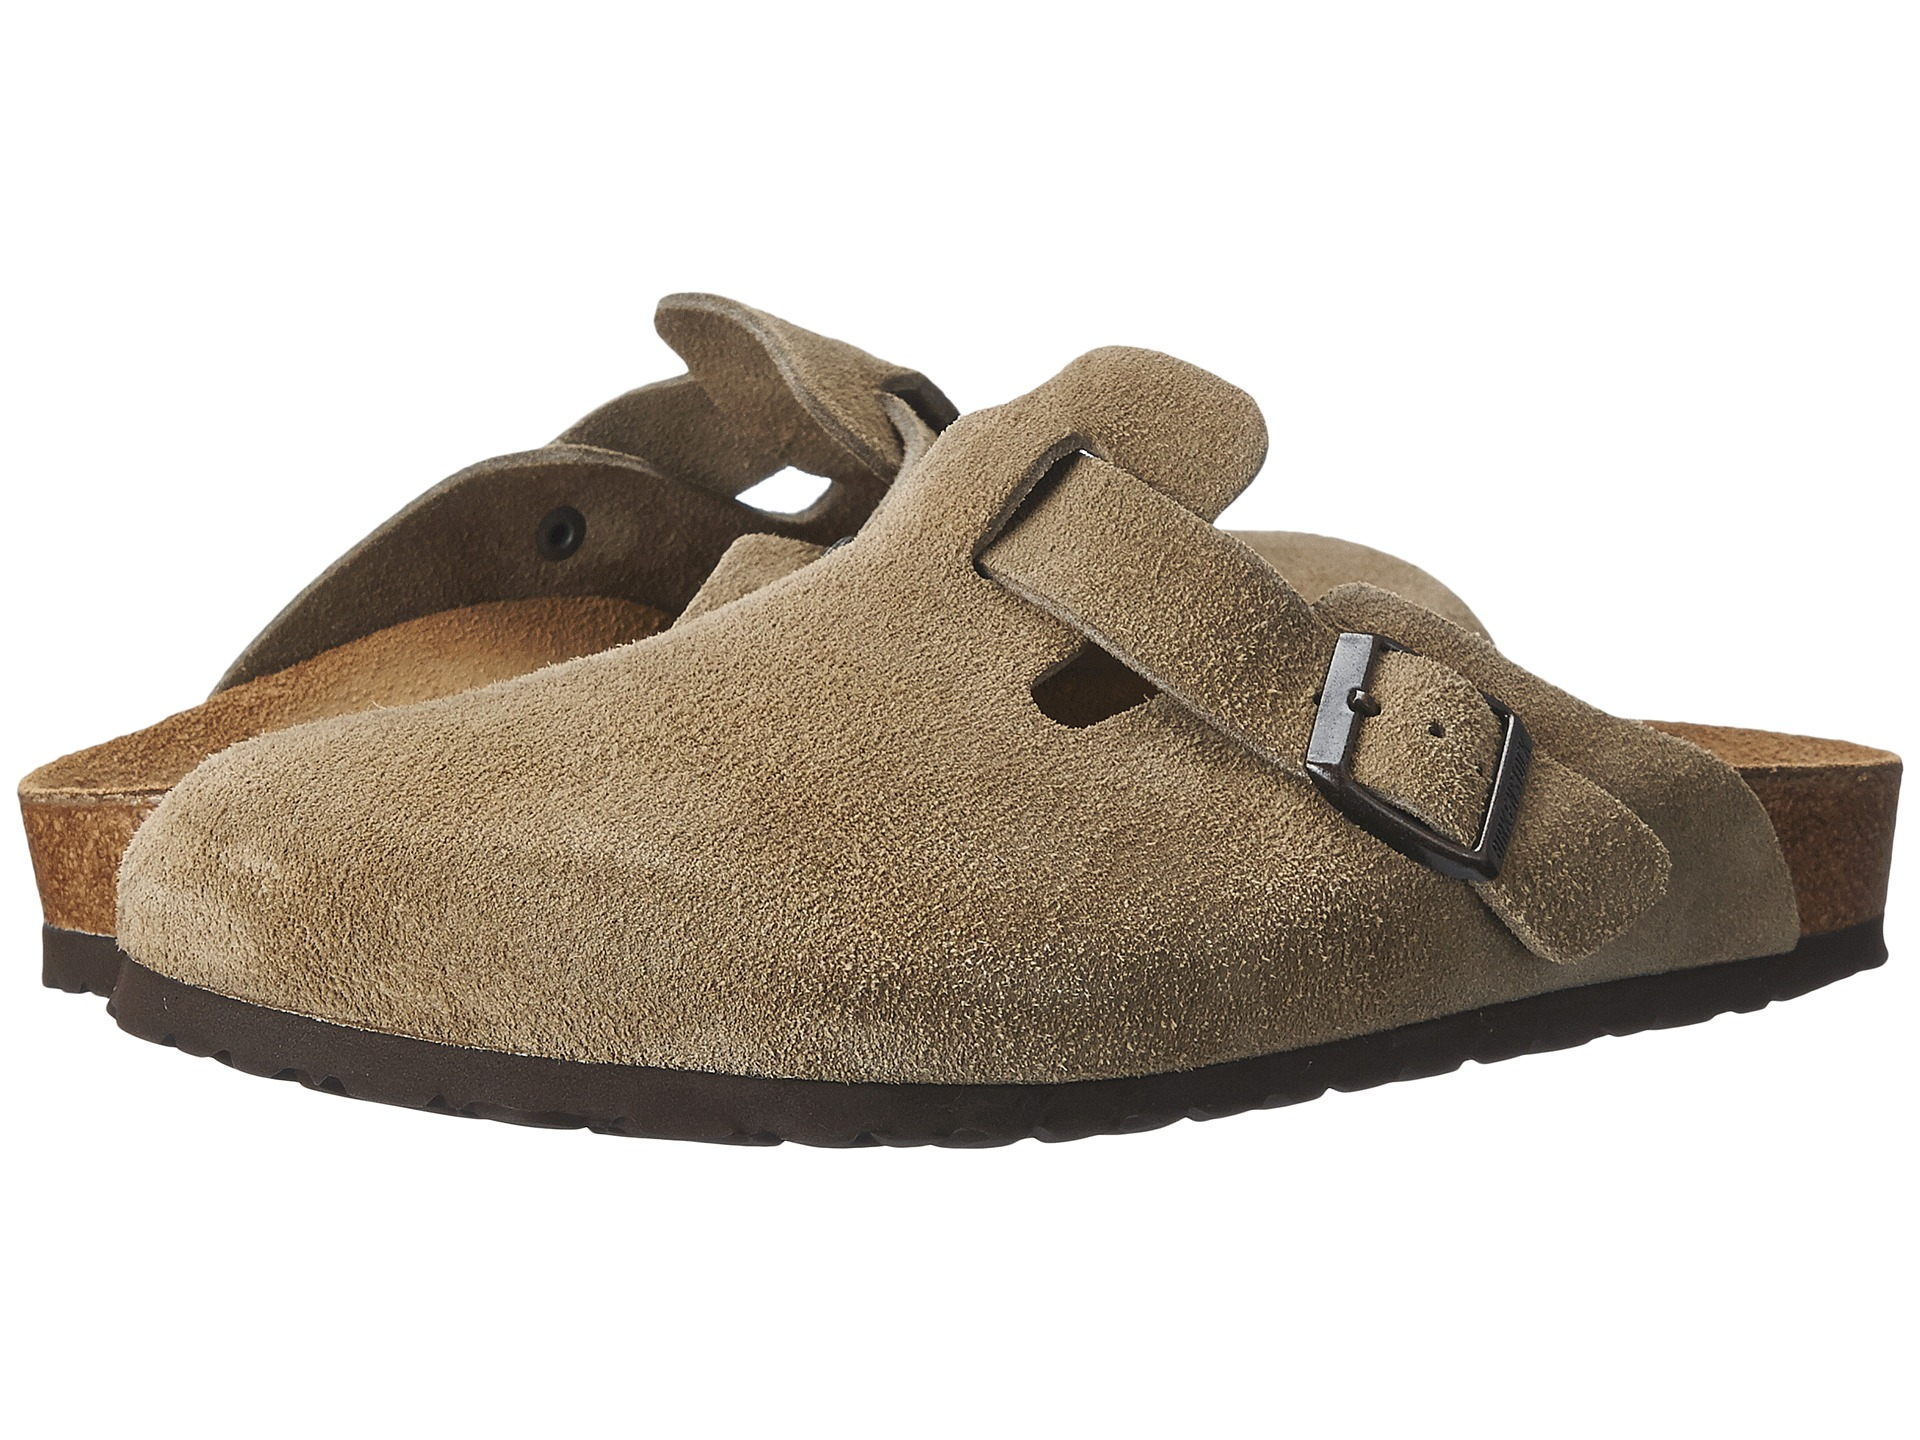 Birkenstock Boston Suede Unisex At Zappos Com